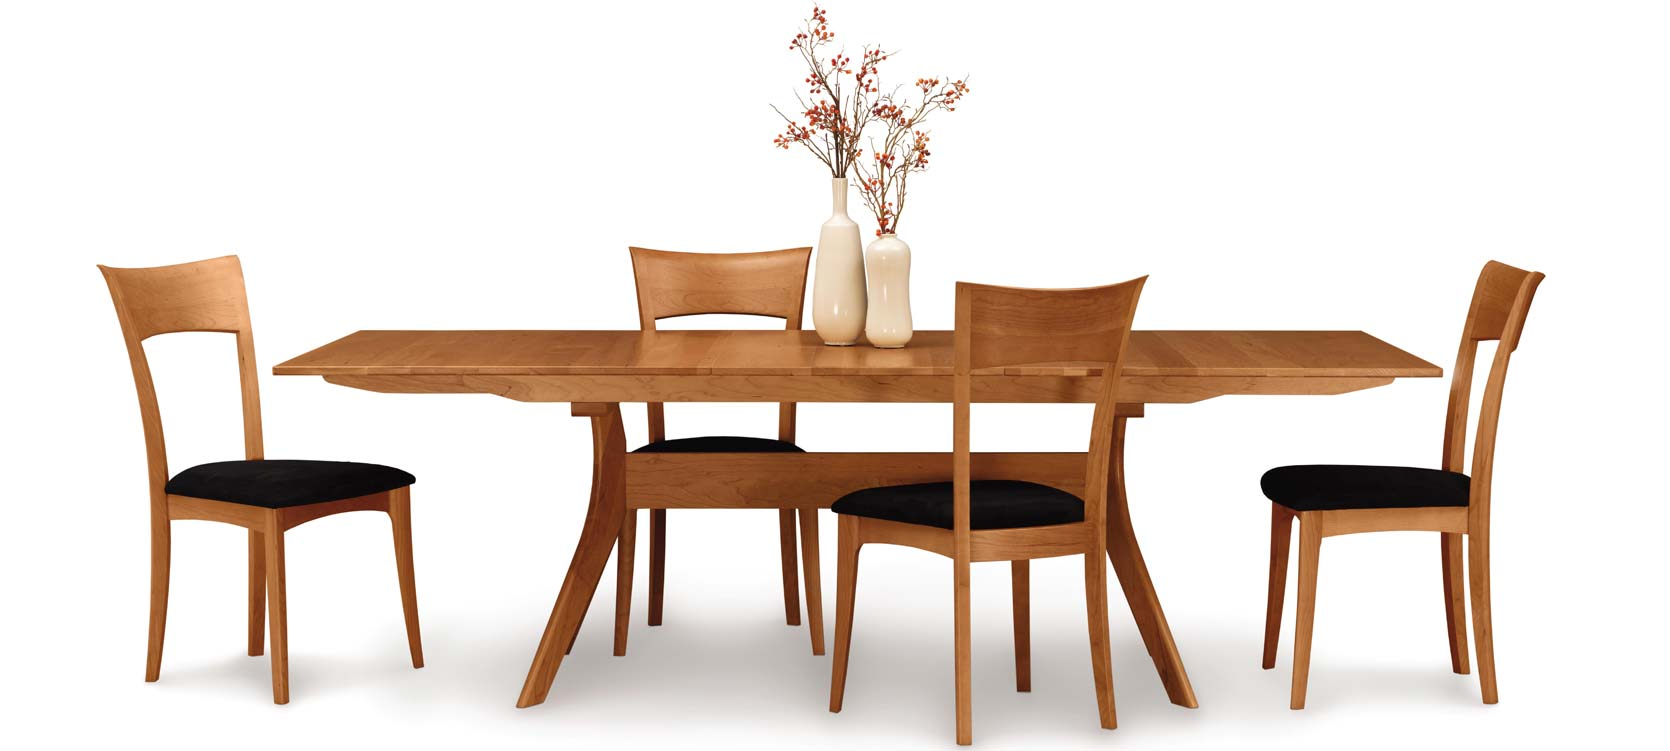 dining room furniture riley real wood audreydining eugene accent table walnut alt wire basket living center decor uttermost sinley battery powered lamps square metal legs tall